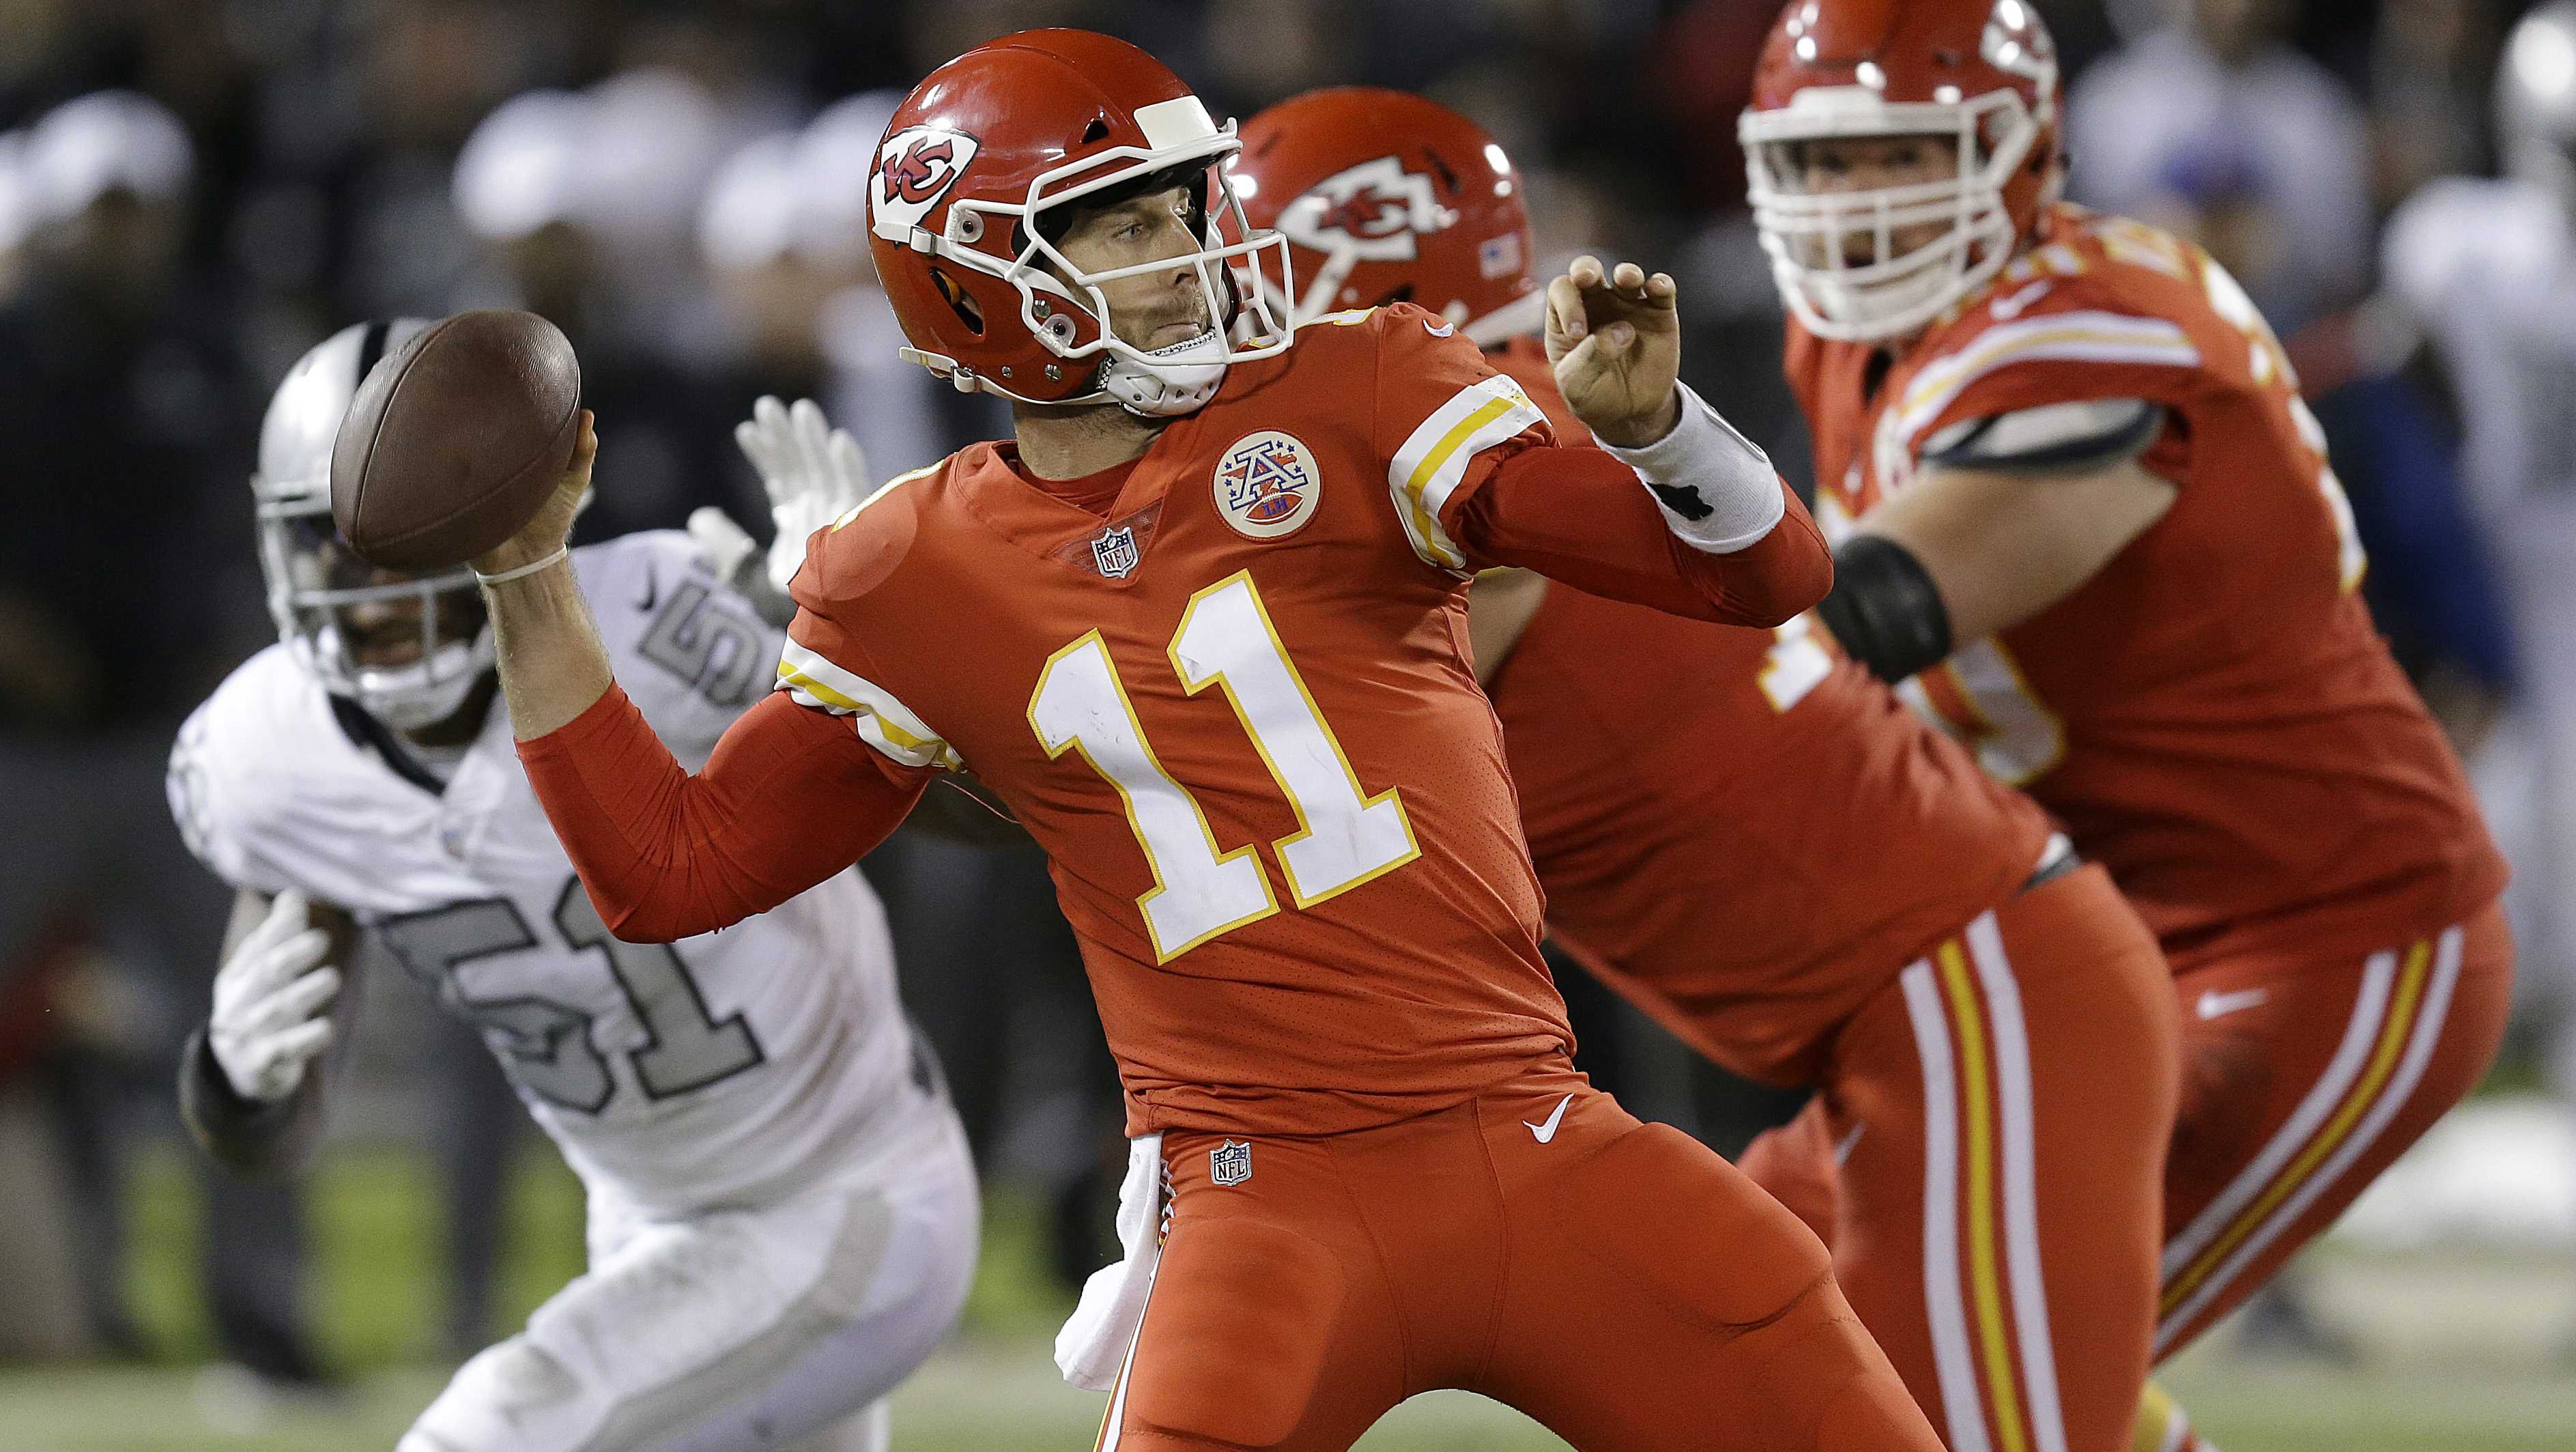 Kansas City Chiefs quarterback Alex Smith (11) passes against the Oakland Raiders during the second half of an NFL football game in Oakland, Calif., Thursday, Oct. 19, 2017. (AP Photo/Ben Margot)